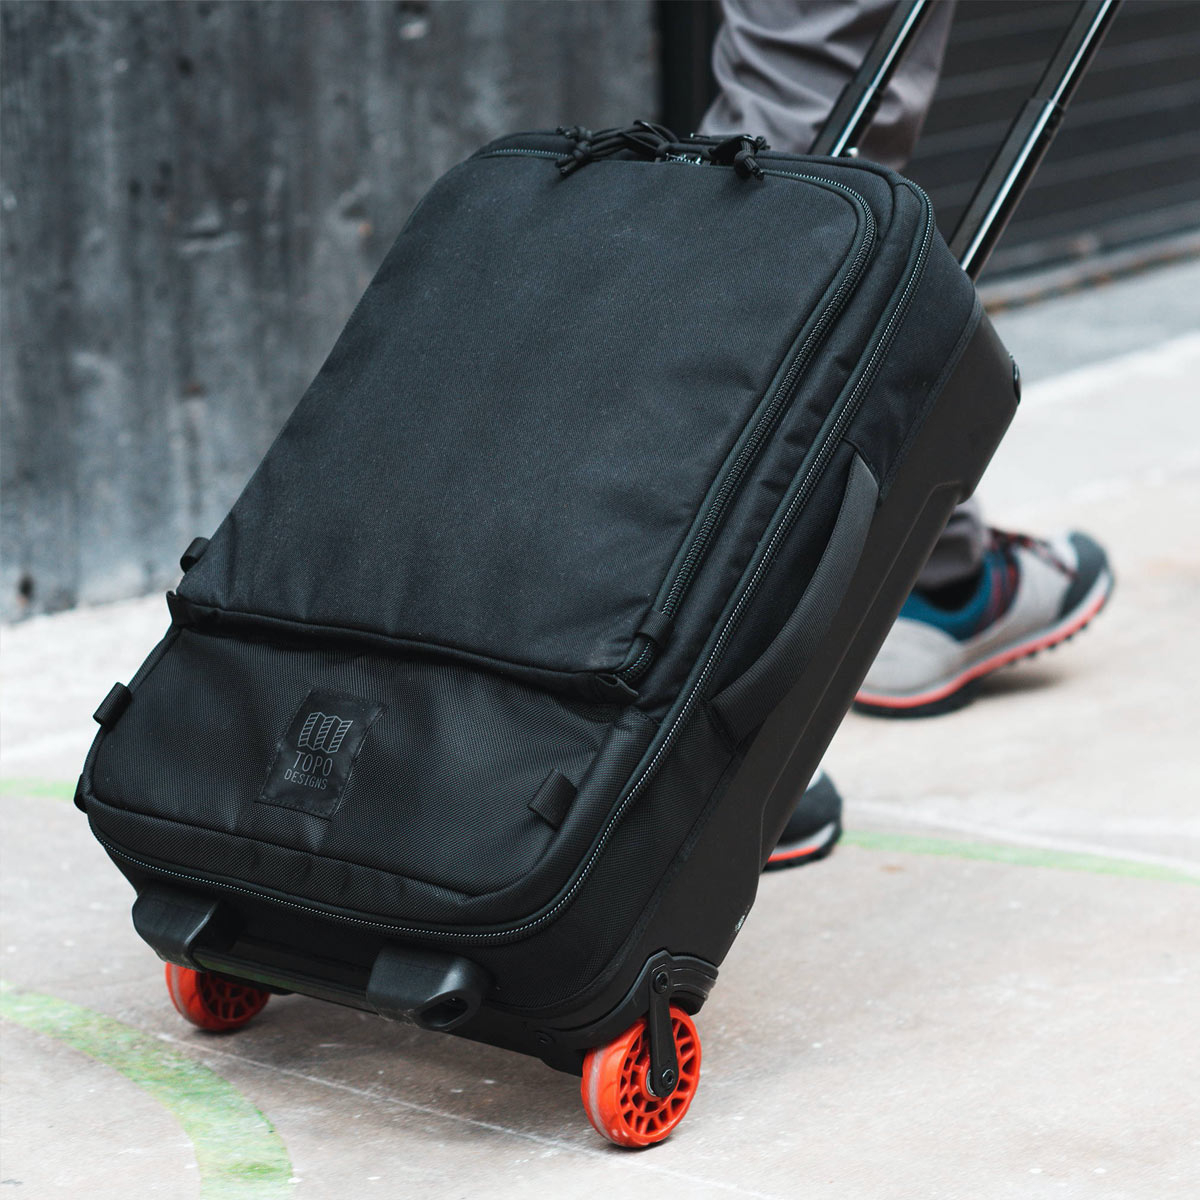 Topo Designs Travel Bag Roller Olive, carry-on friendly size and the 3-way carry ensures a smooth trip